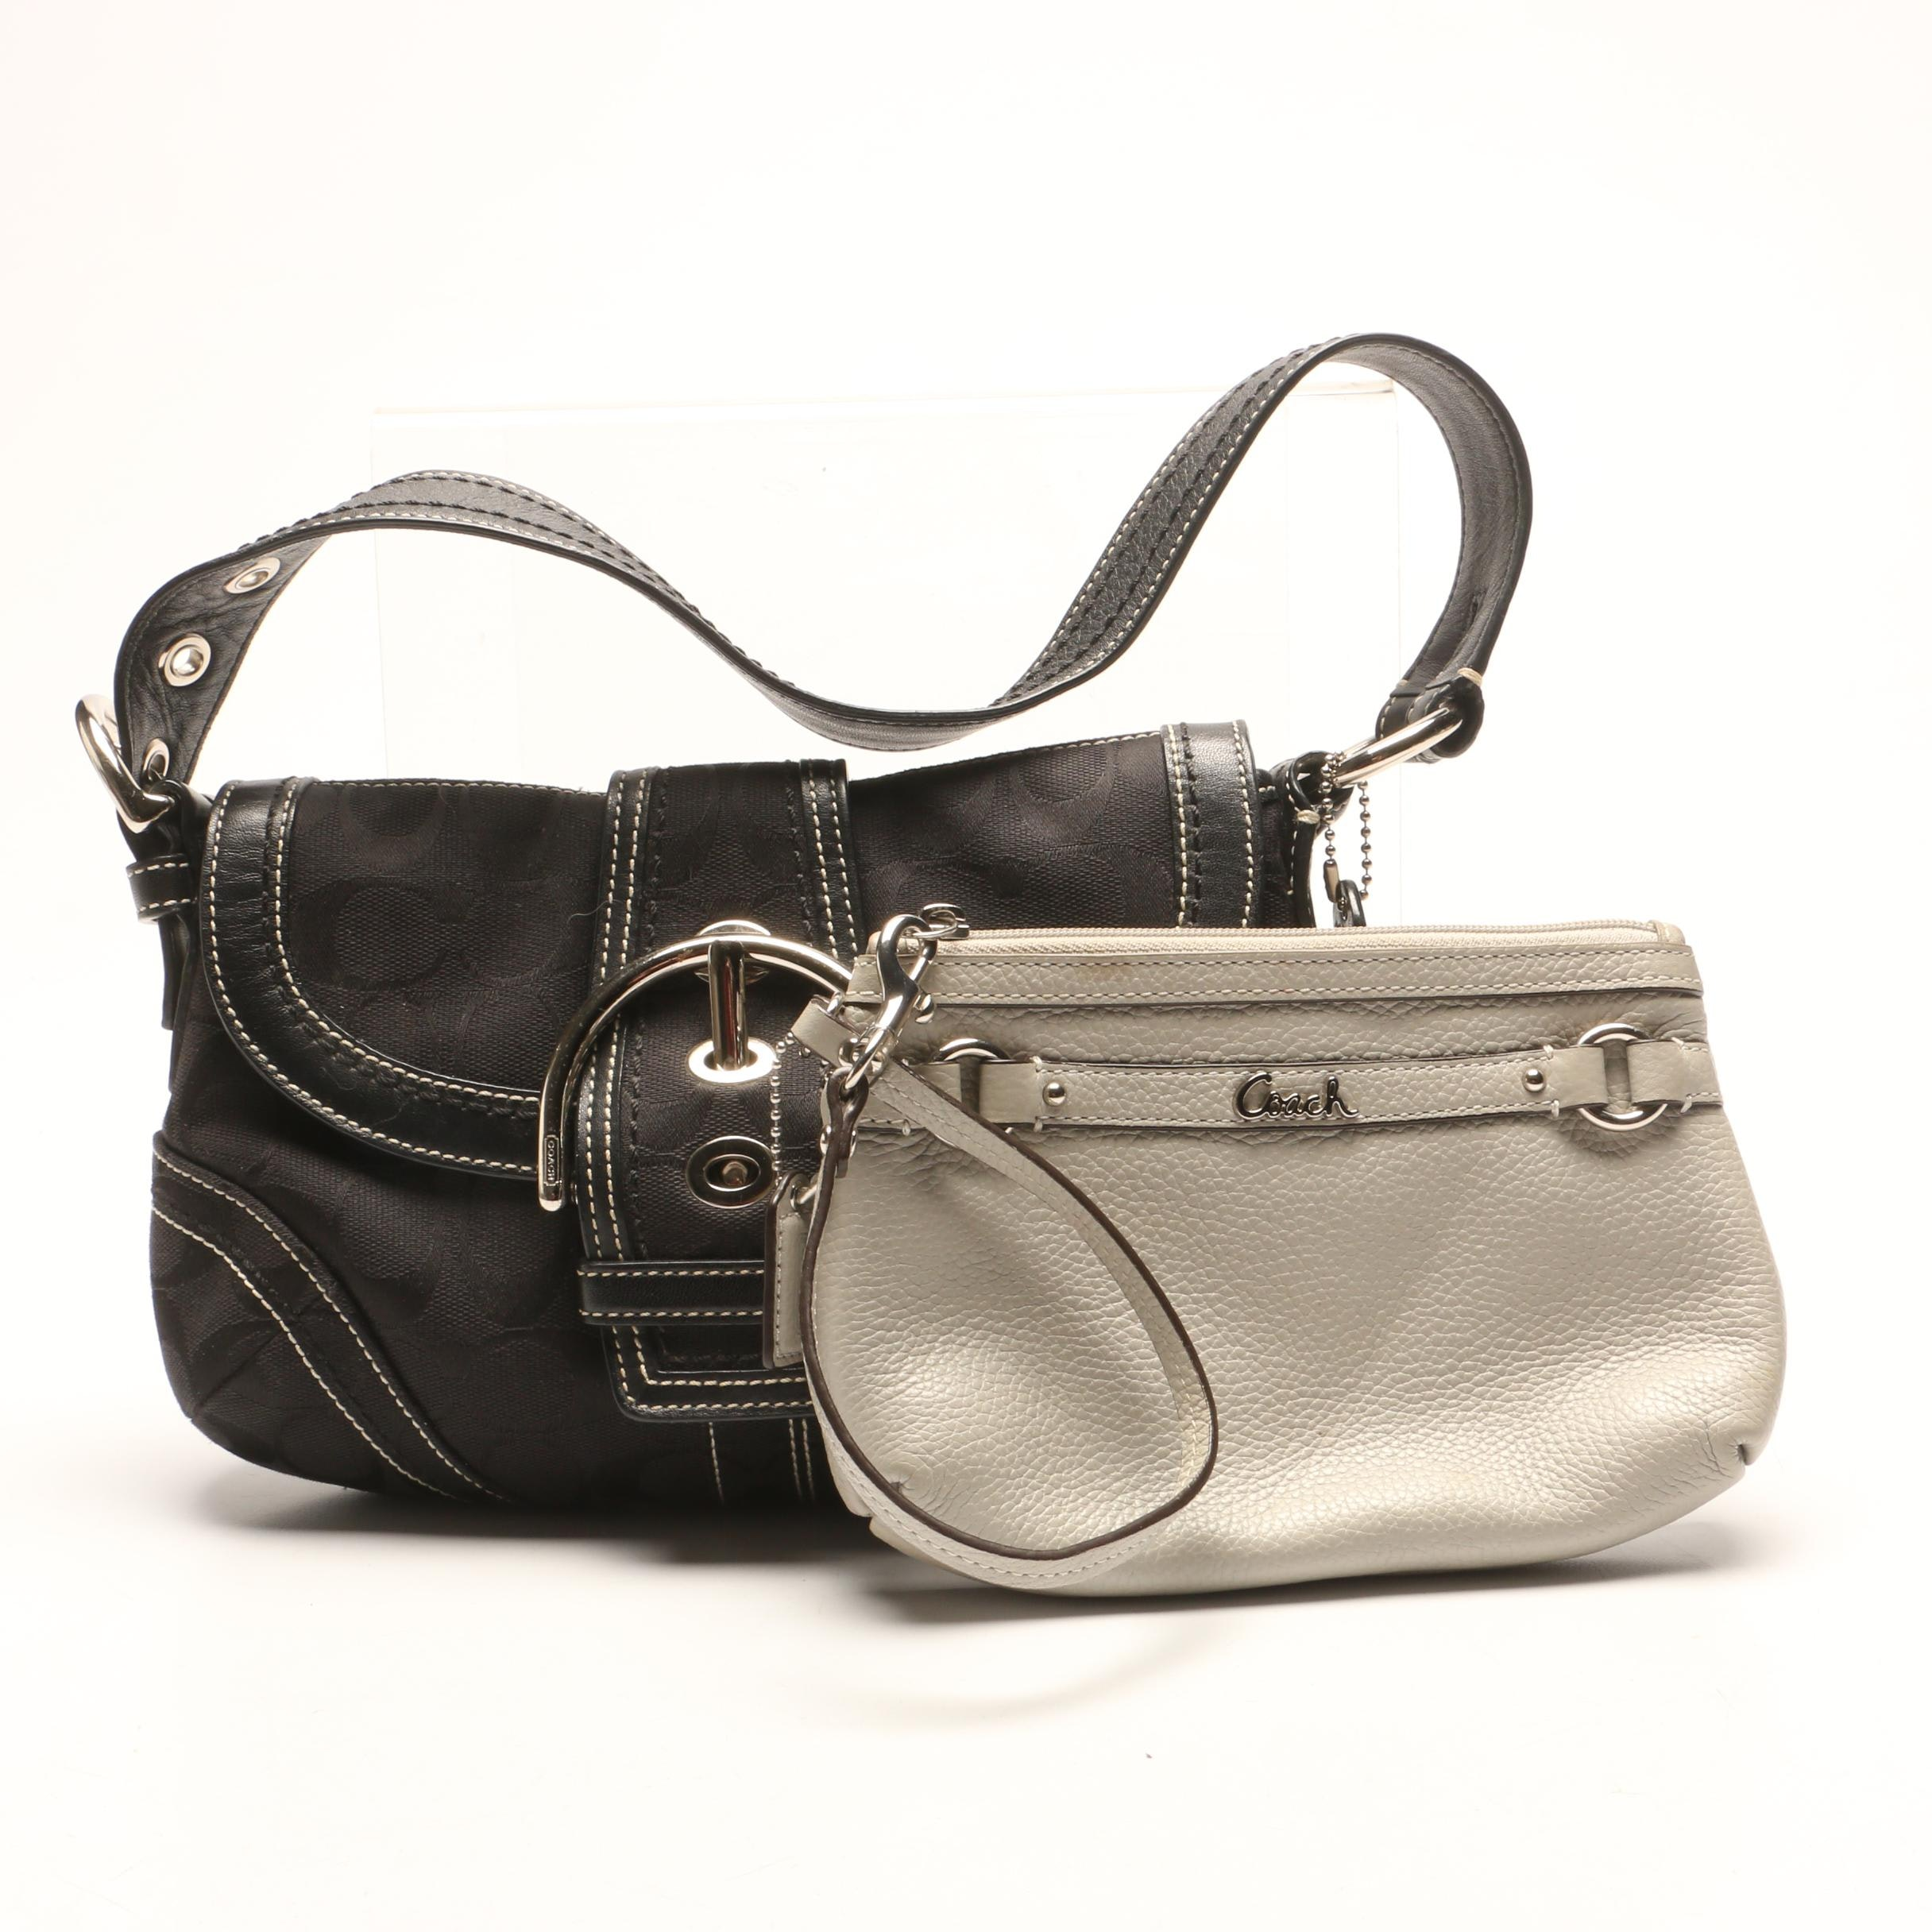 Coach Black Signature Buckle Flap Hobo Bag and Coach Pebbled Leather Wristlet